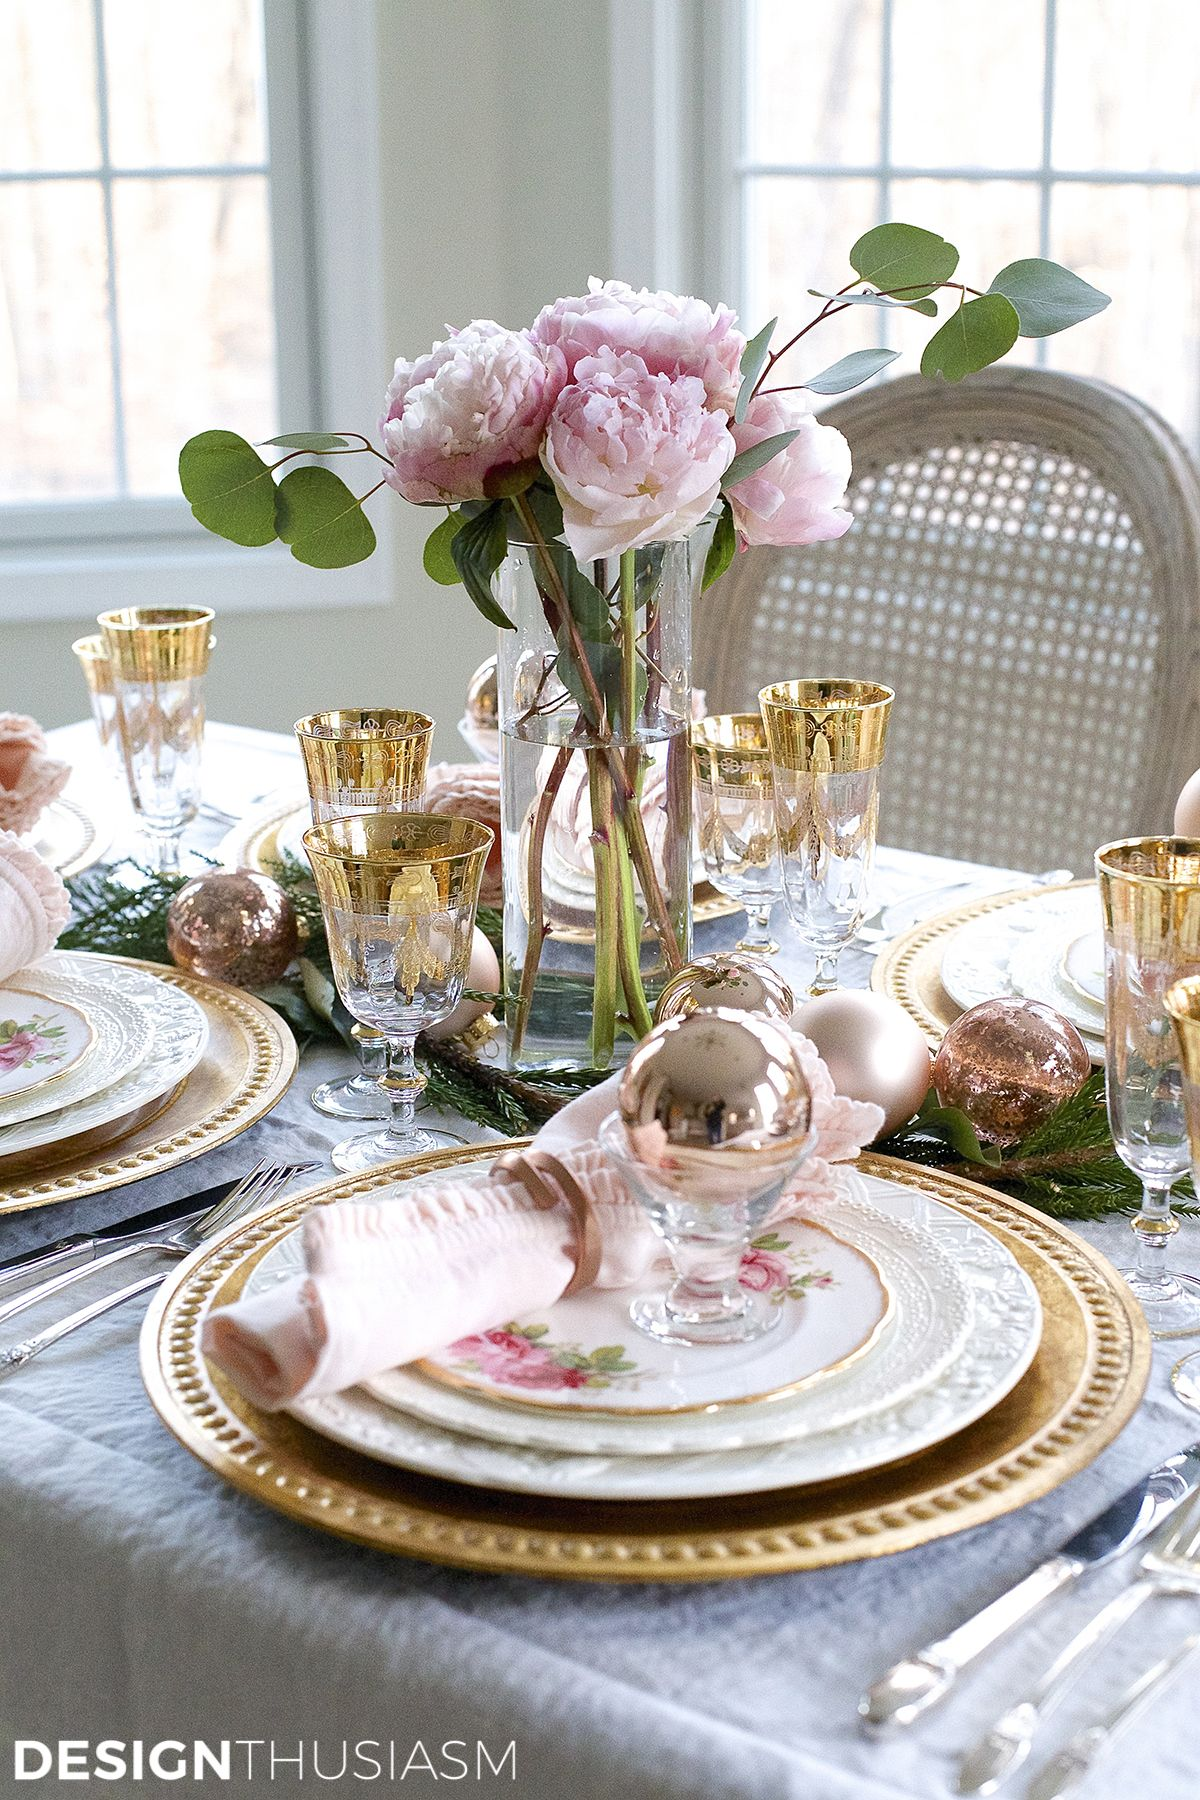 Christmas Table Settings Ideas Pictures.Elegant Christmas Table Setting With Pink And Gold